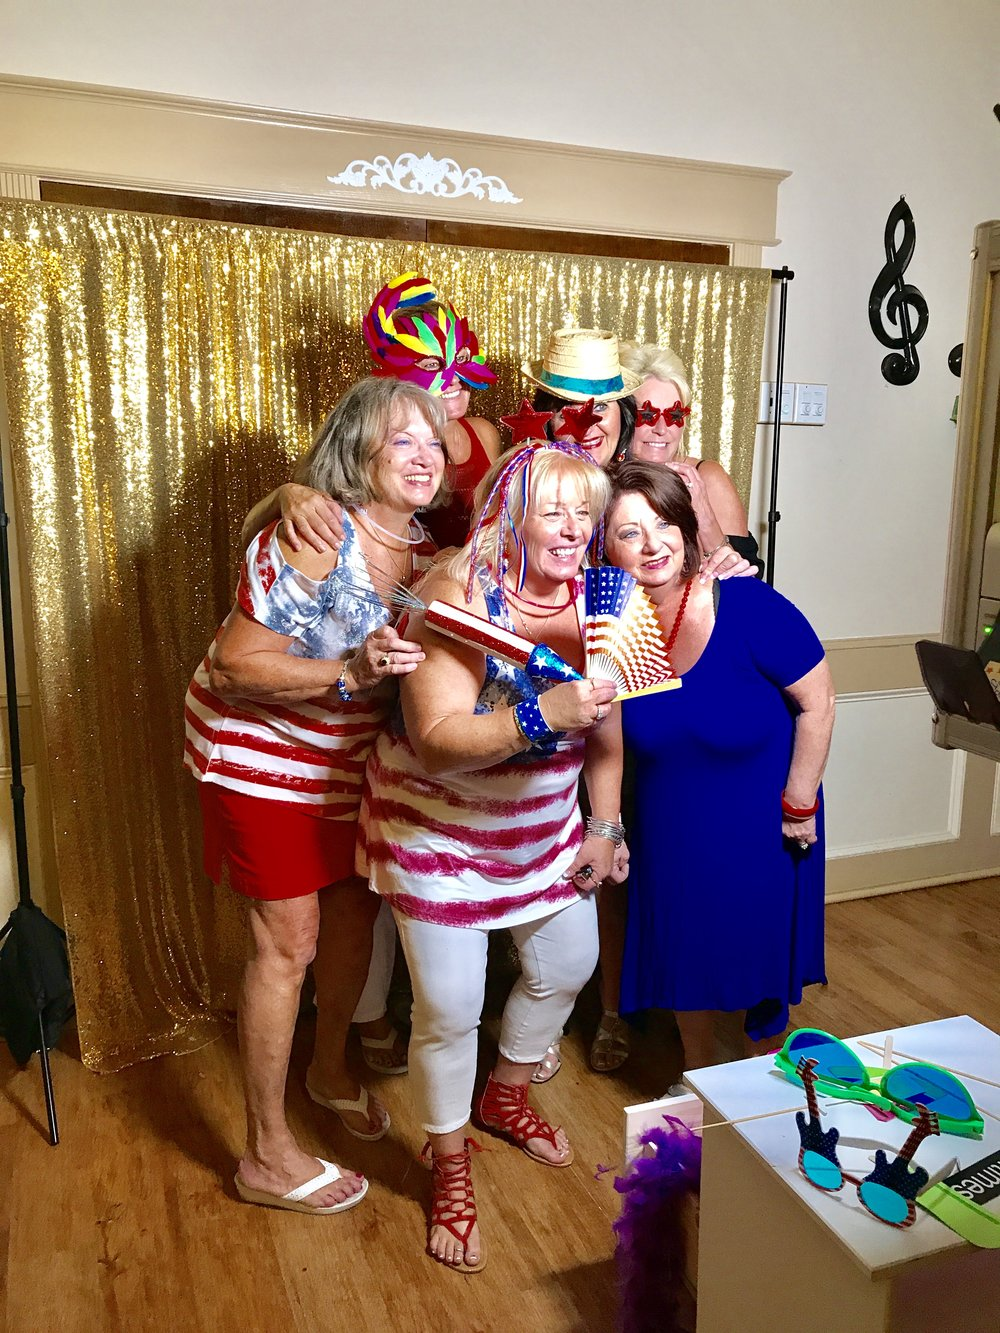 Reunion photo booth in Bradenton FL.